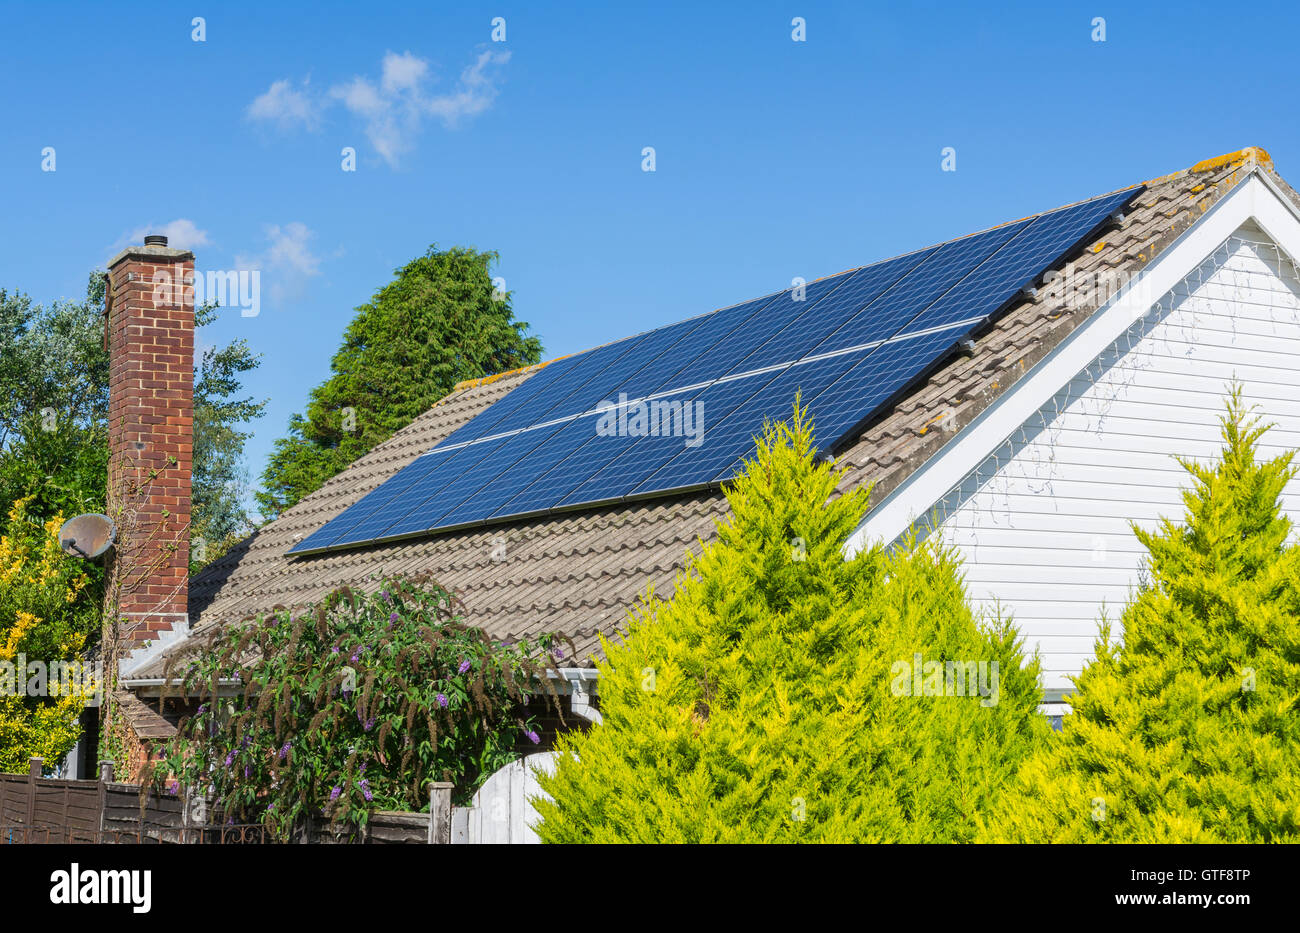 Solar panels on the roof of a bungalow in the UK. - Stock Image